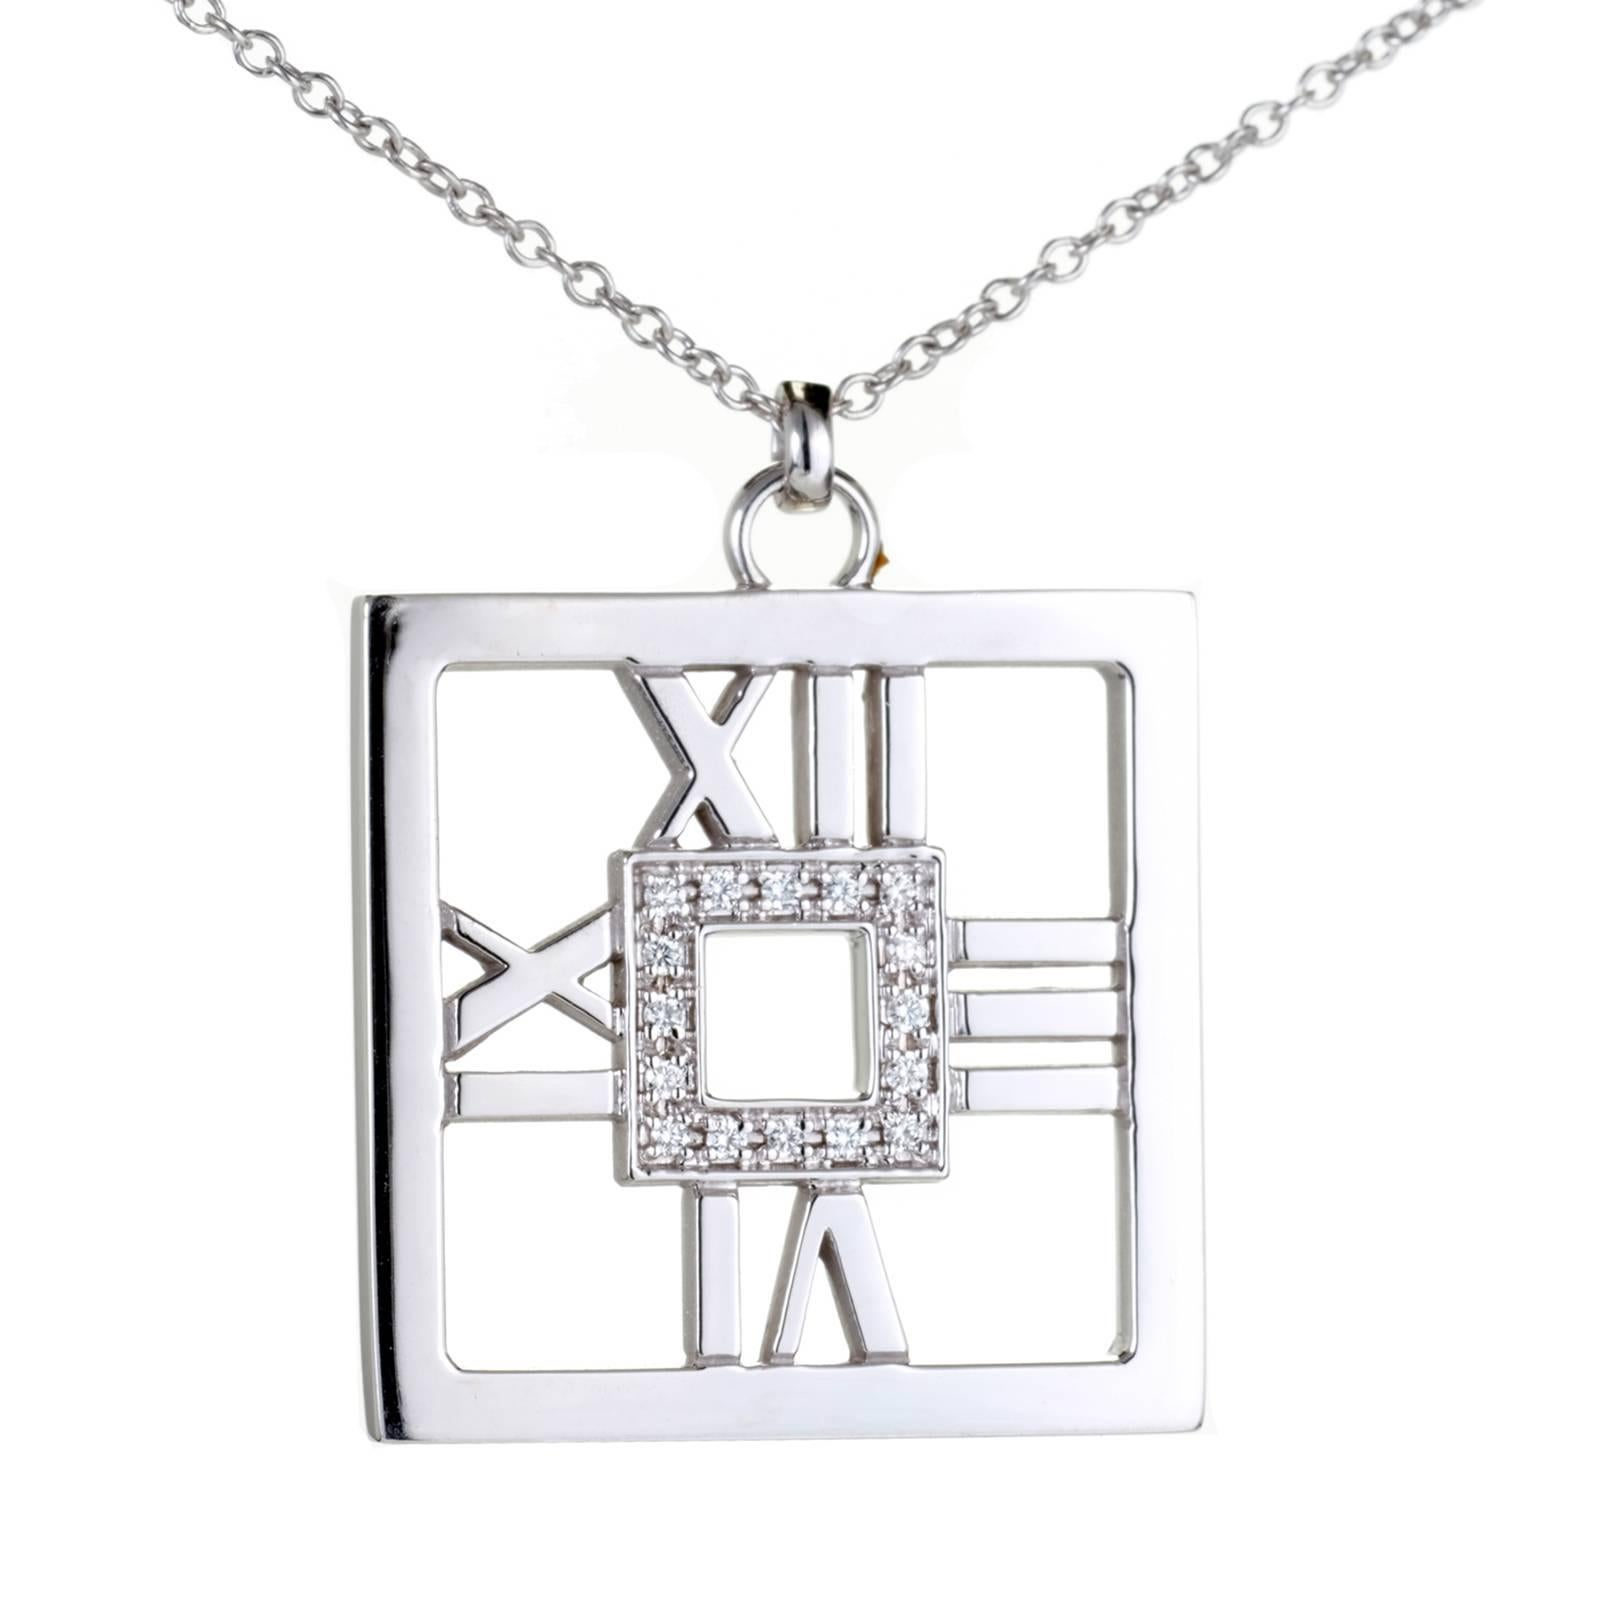 Tiffany & Co. .22 Carat Diamond Gold Square Atlas Pendant Necklace